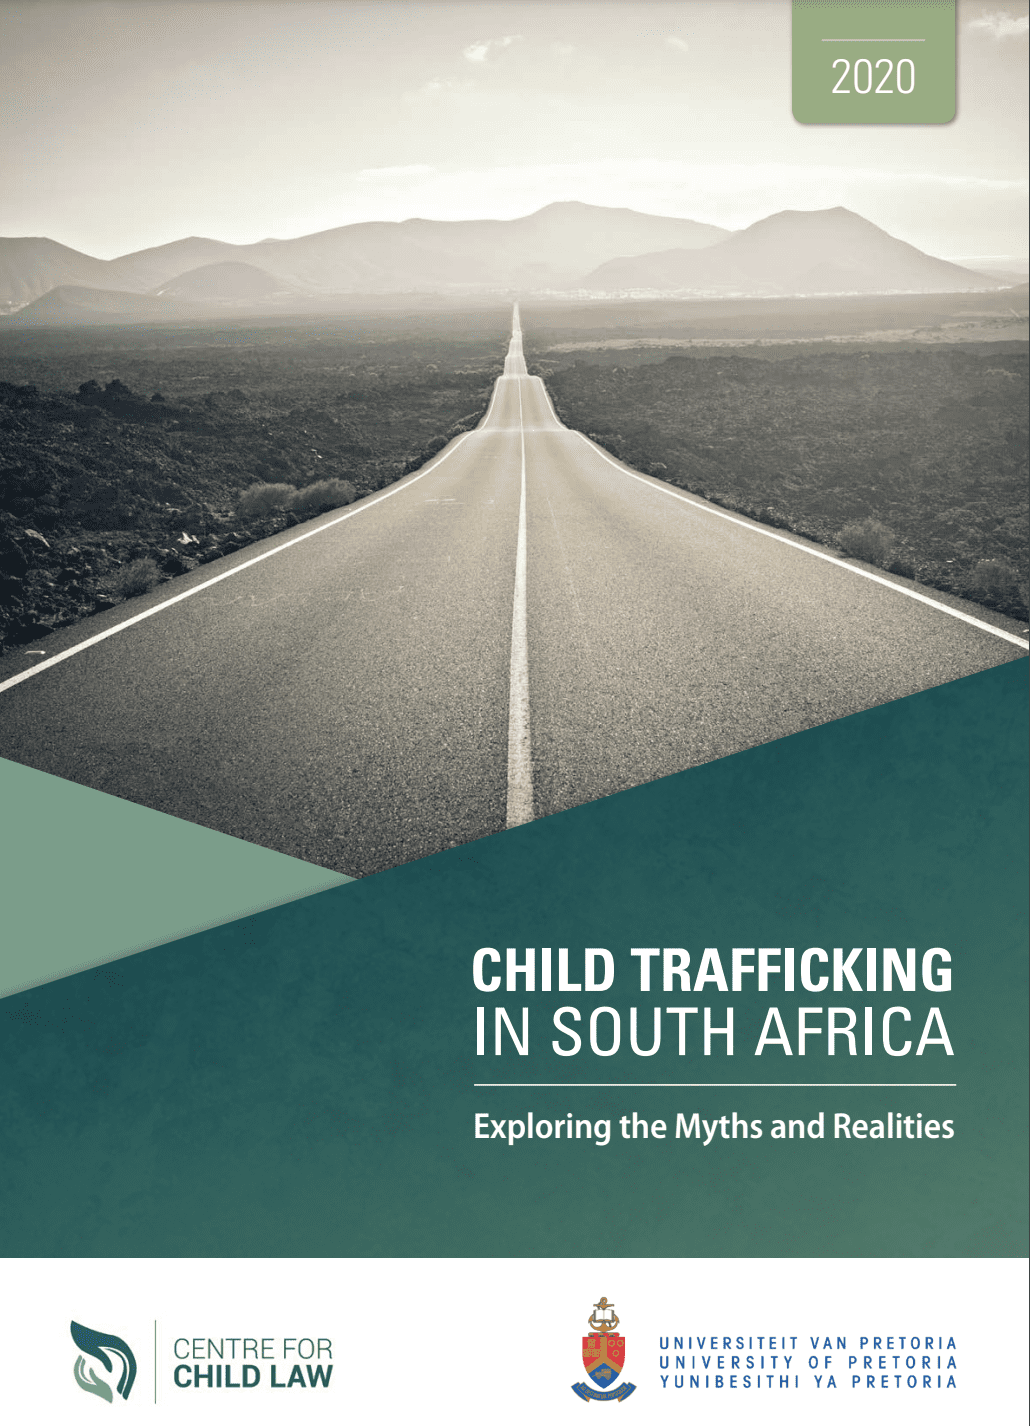 Child Trafficking in South Africa: Exploring Myths and Realities